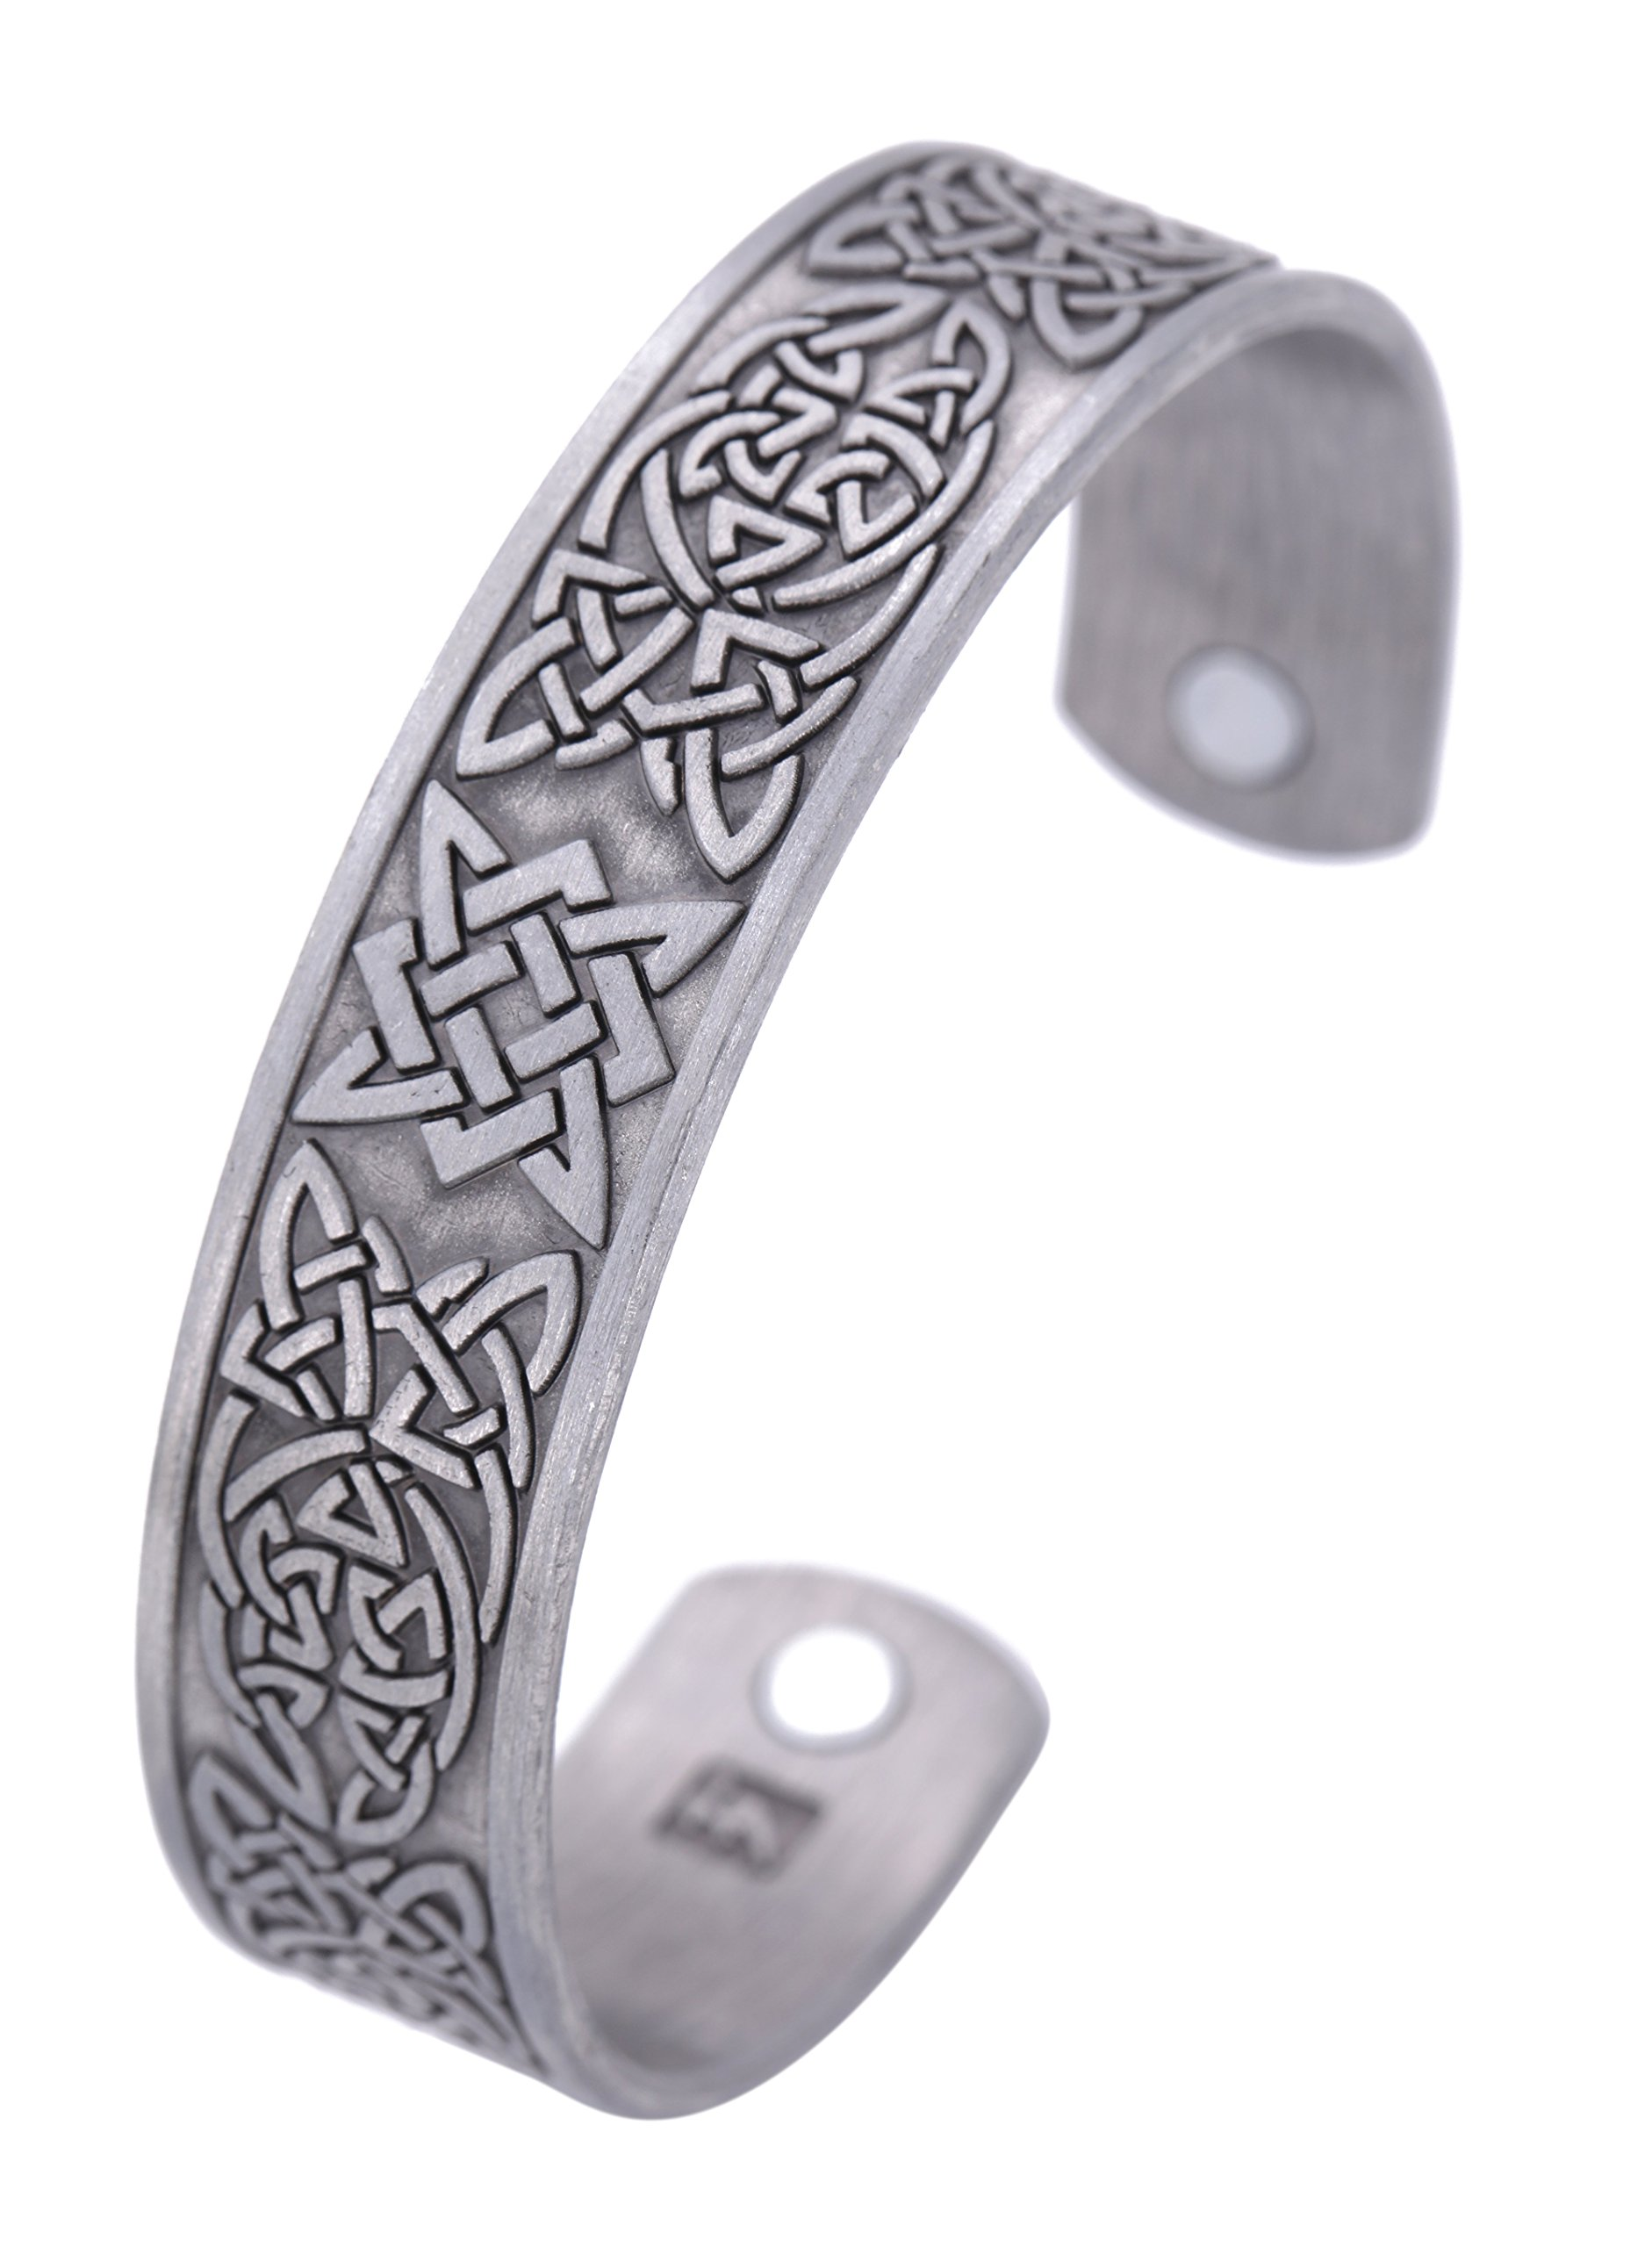 TEAMER Punk Tree of Life Yggdrasil Celtic Knot Raven Magnetic Therapy Cuff Bangle (Antique Silver)